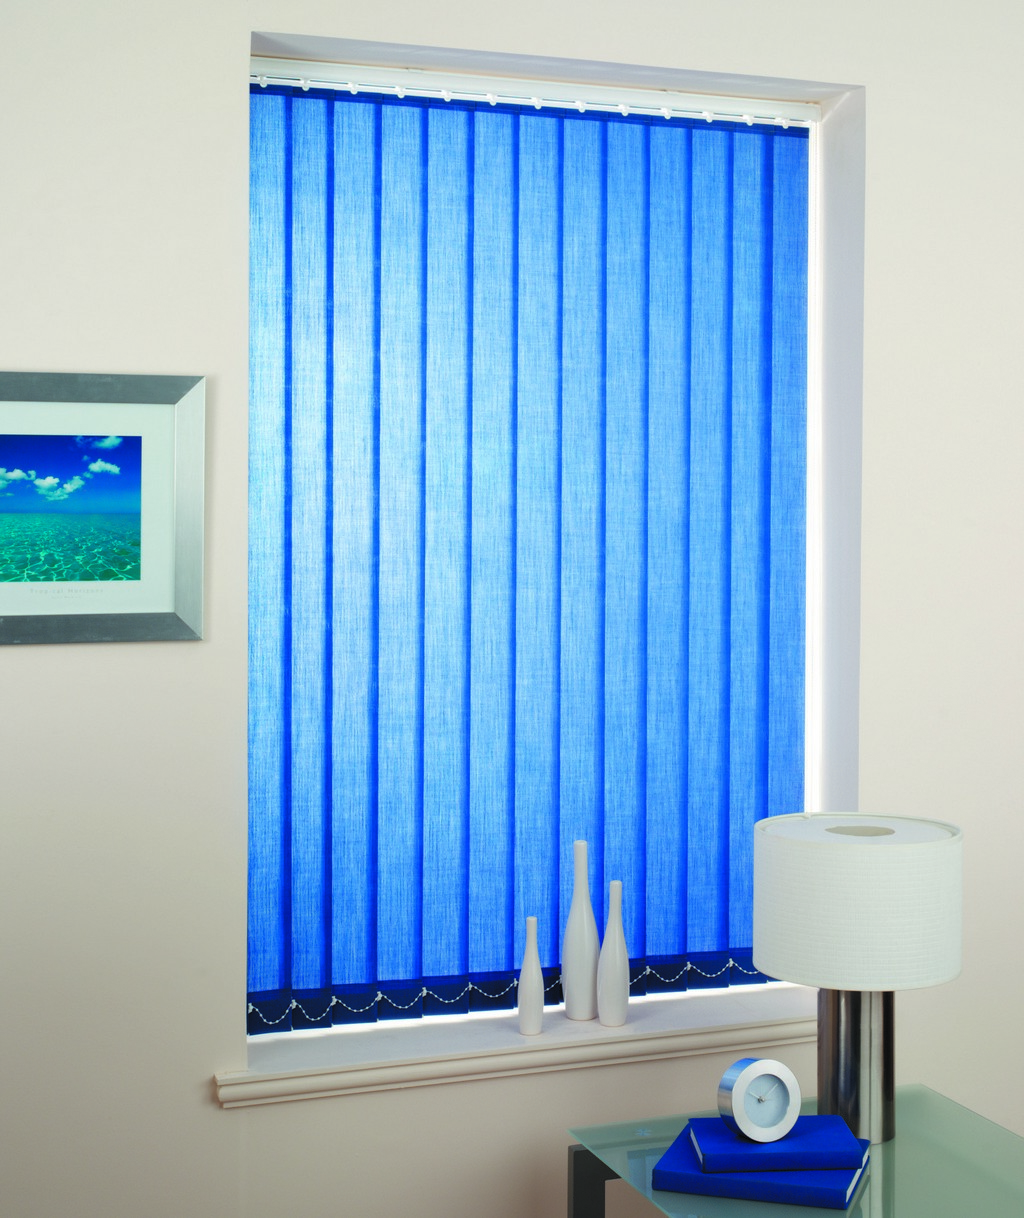 5 Blinds To Keep Heat Out In The Summer Expression Blinds